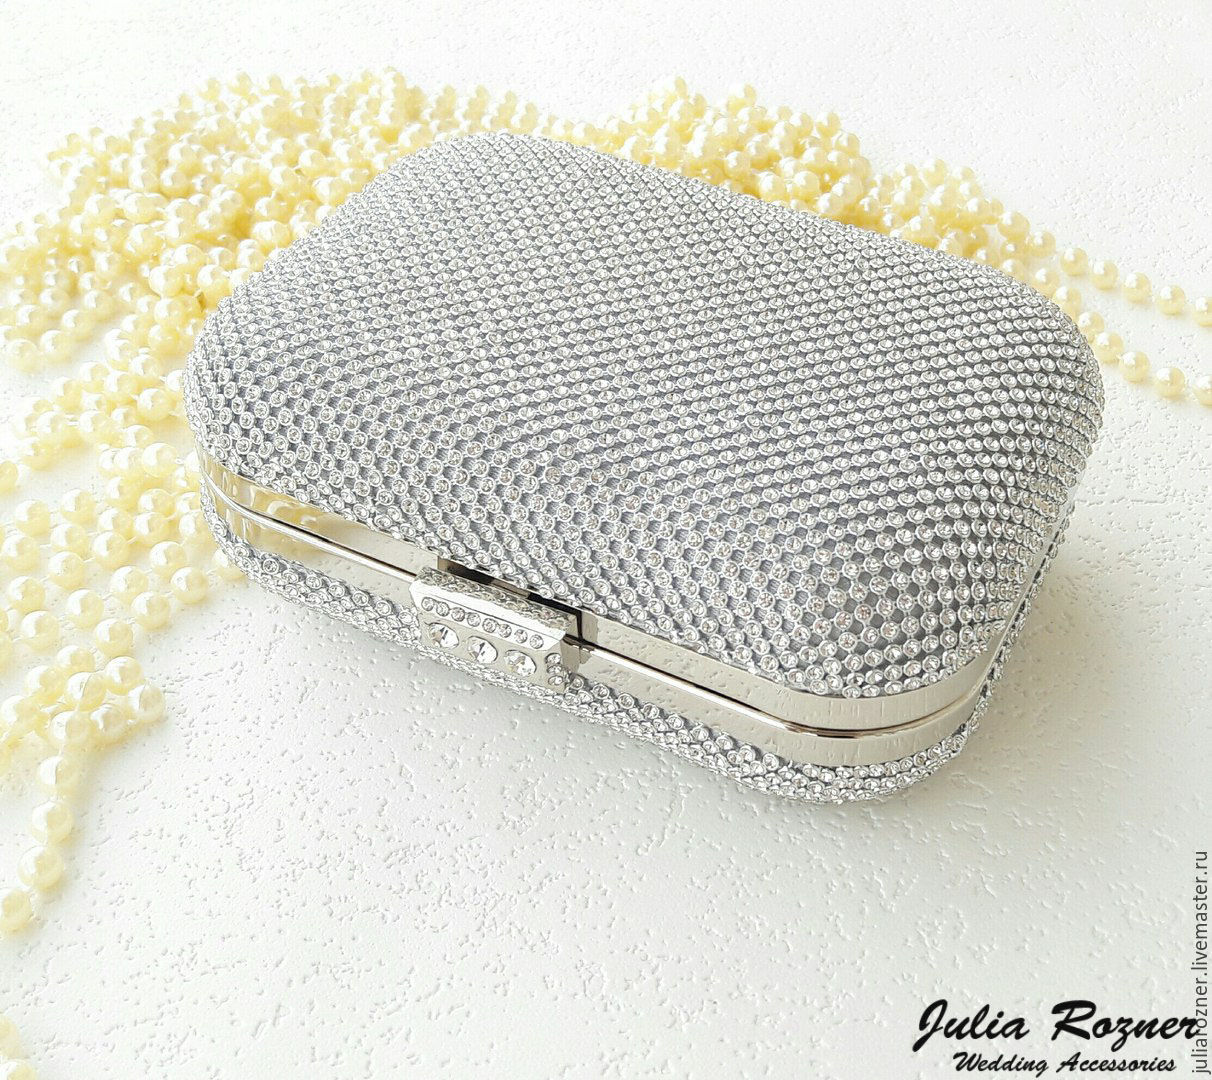 Evening Silver Clutch Bag Silver Bridal Clutch U2013 Shop Online On Livemaster With Shipping ...